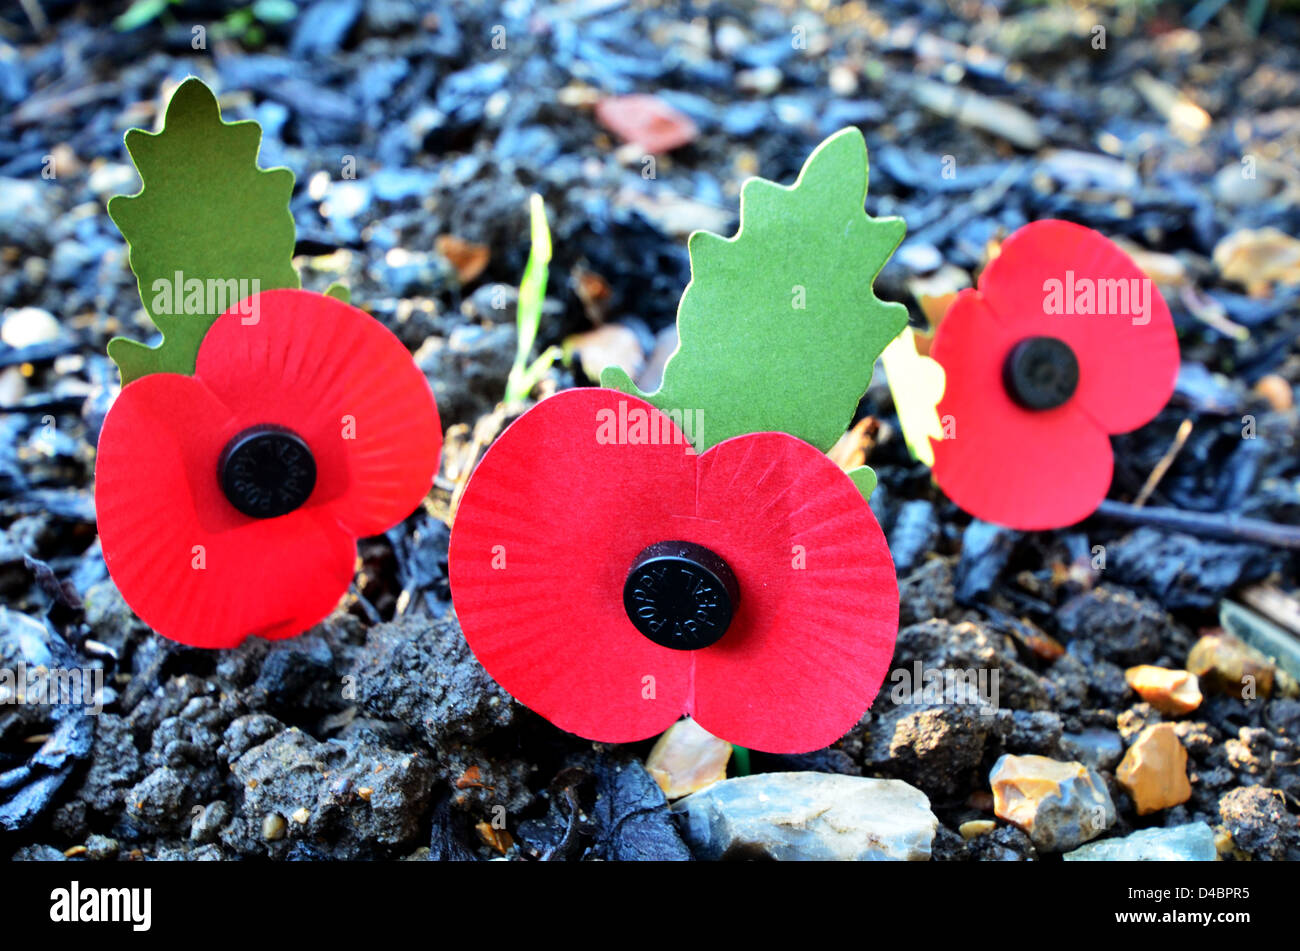 ARTIFICIAL REMEMBRANCE DAY POPPIES IN A GARDEN - Stock Image